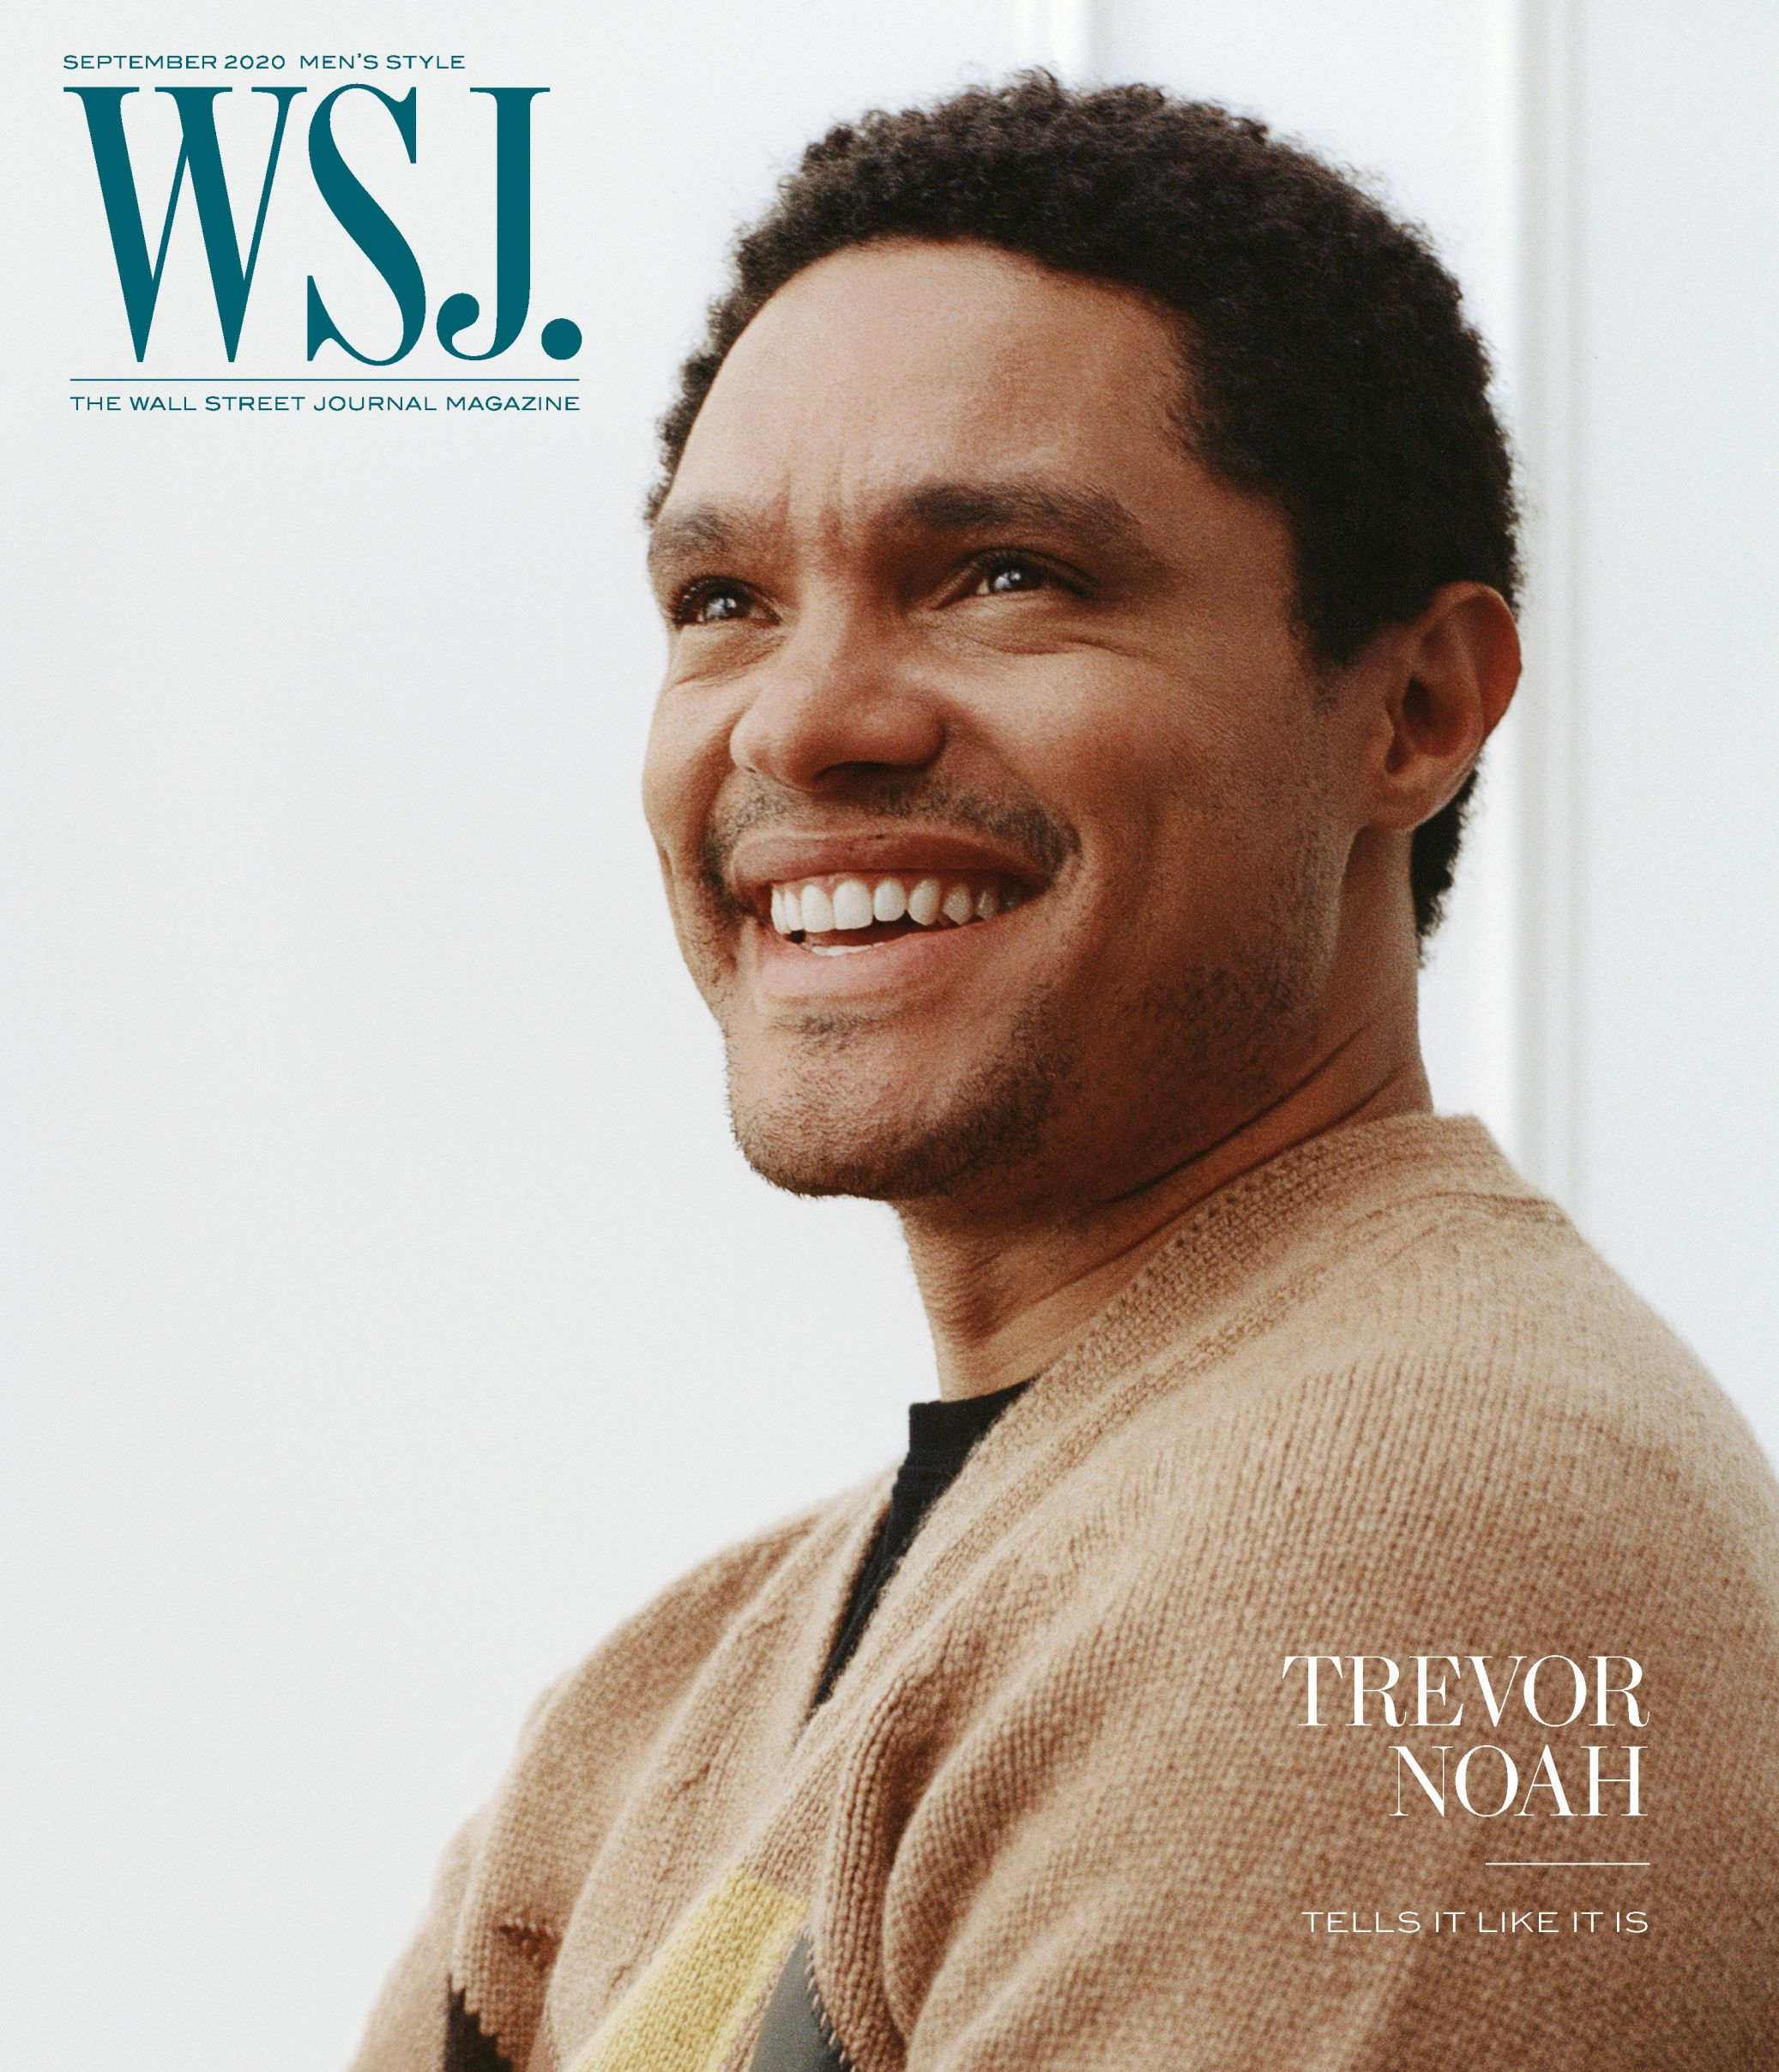 trevor-noah-wall-street-journal-magazine-september-issue